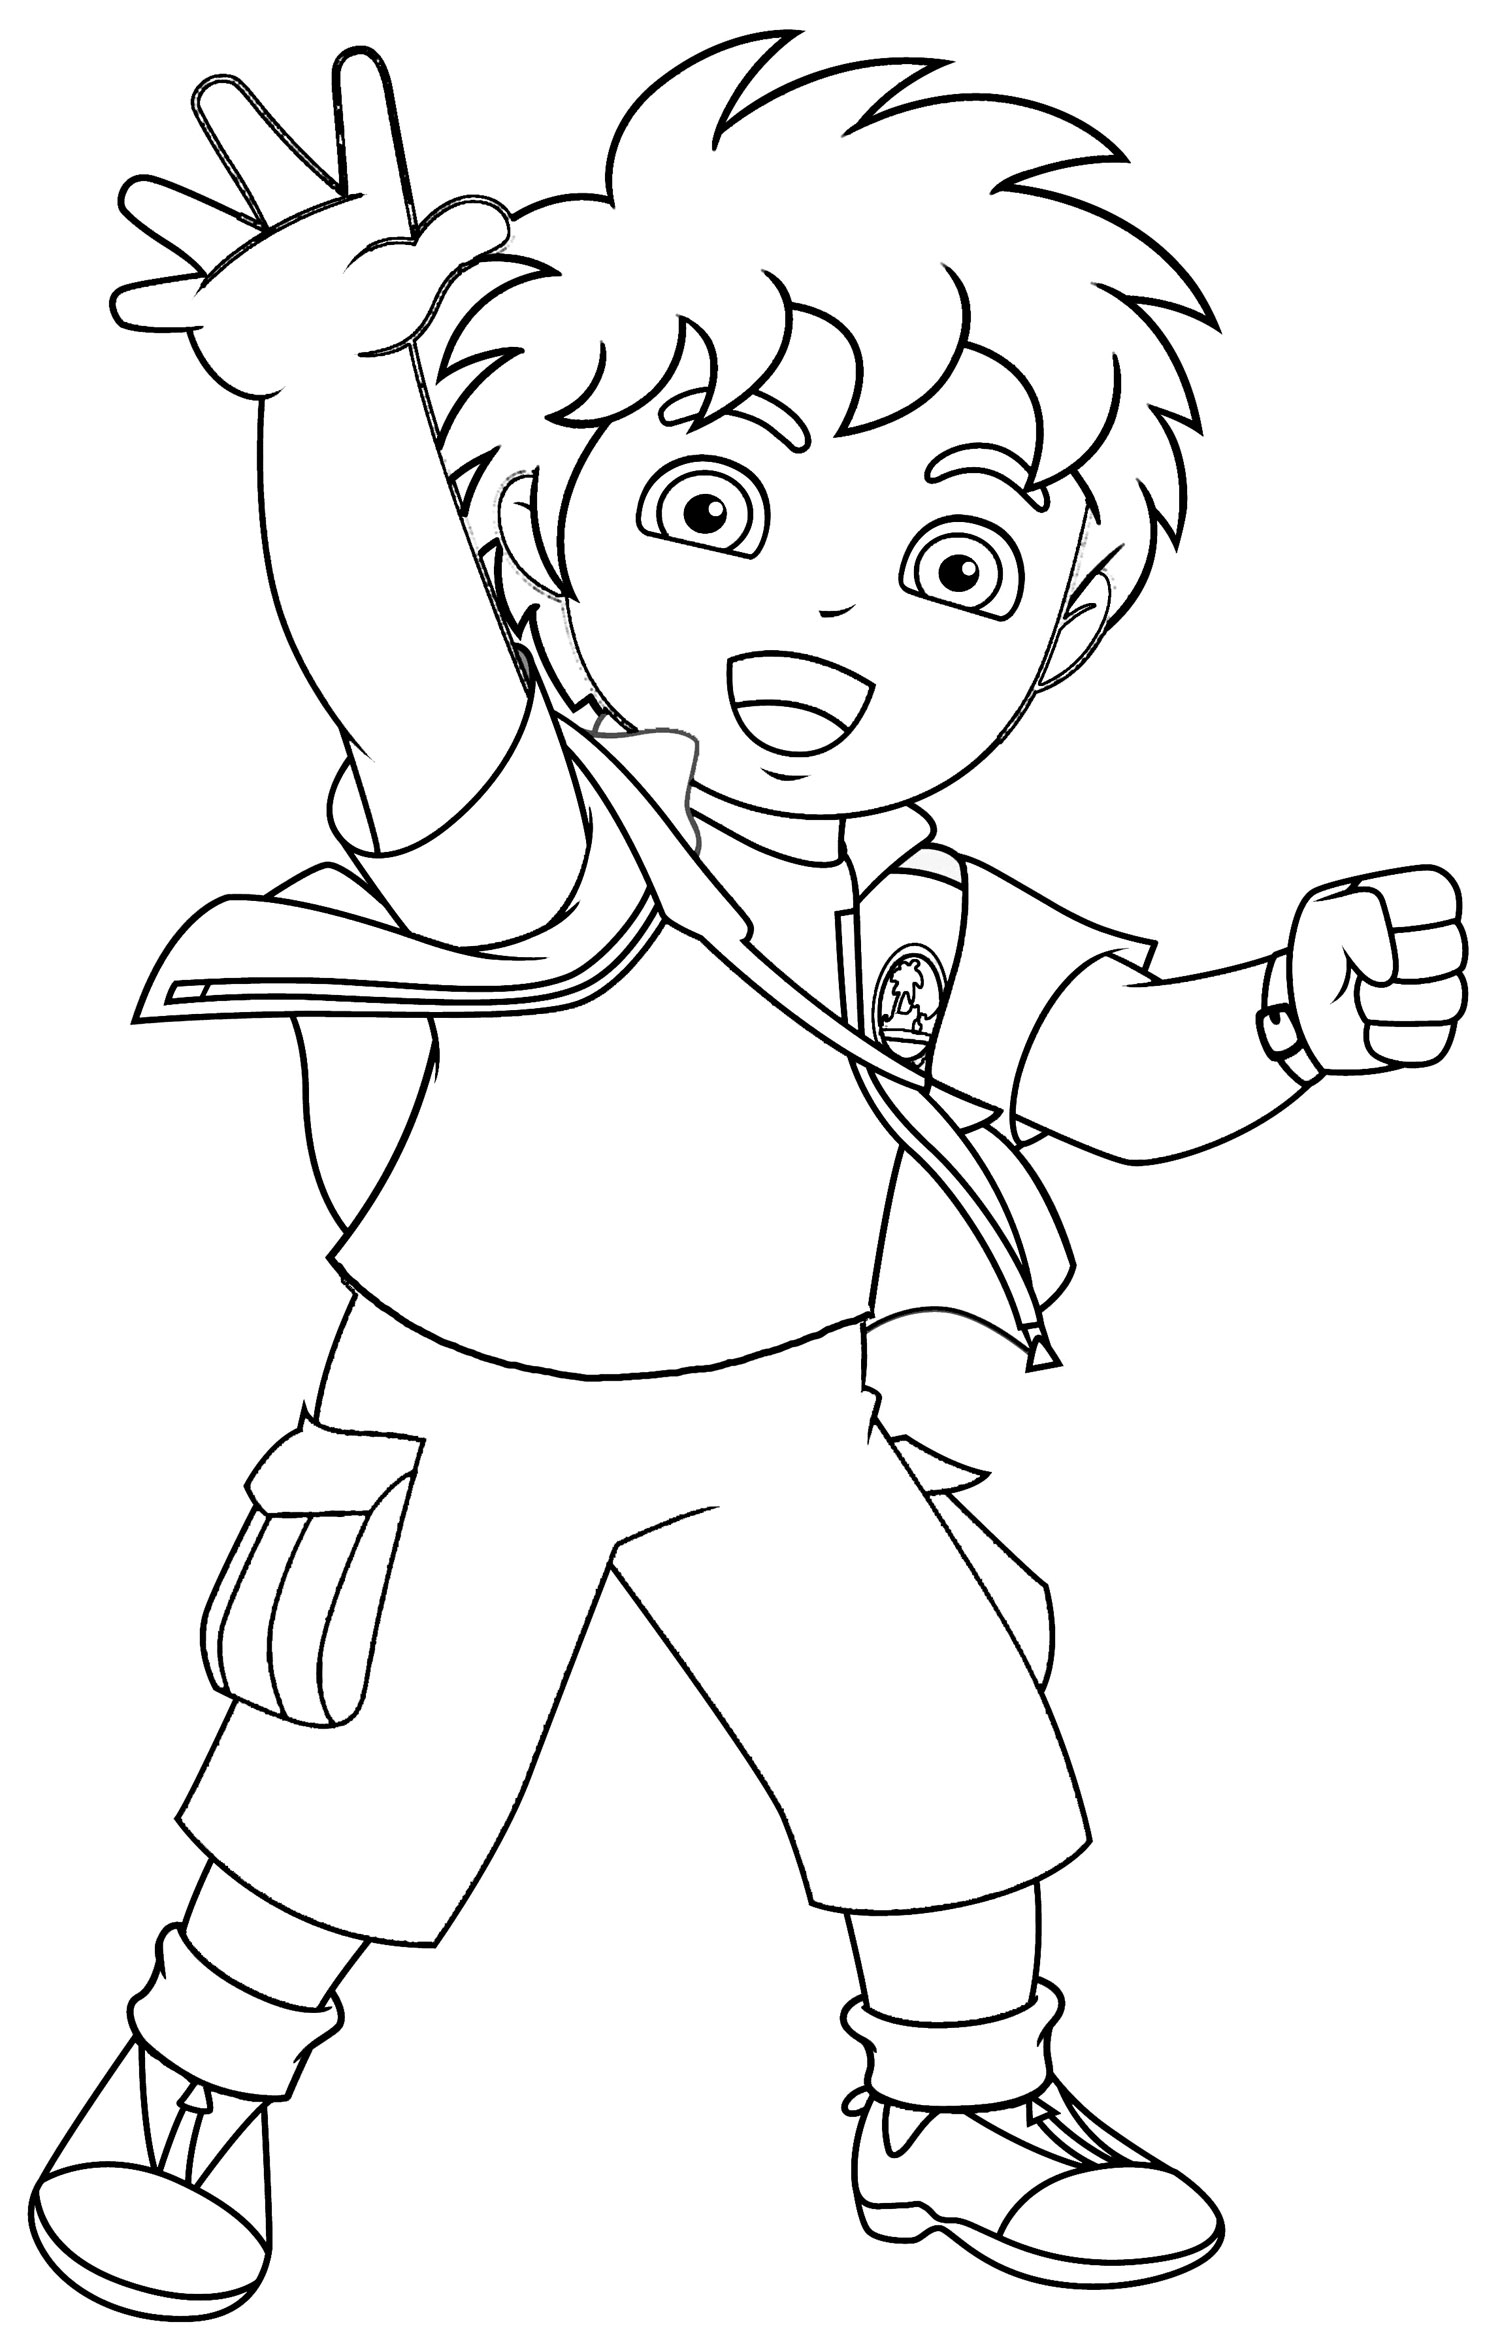 Free Printable Diego Coloring Pages For Kids Coloring Pages To Print Out For Free